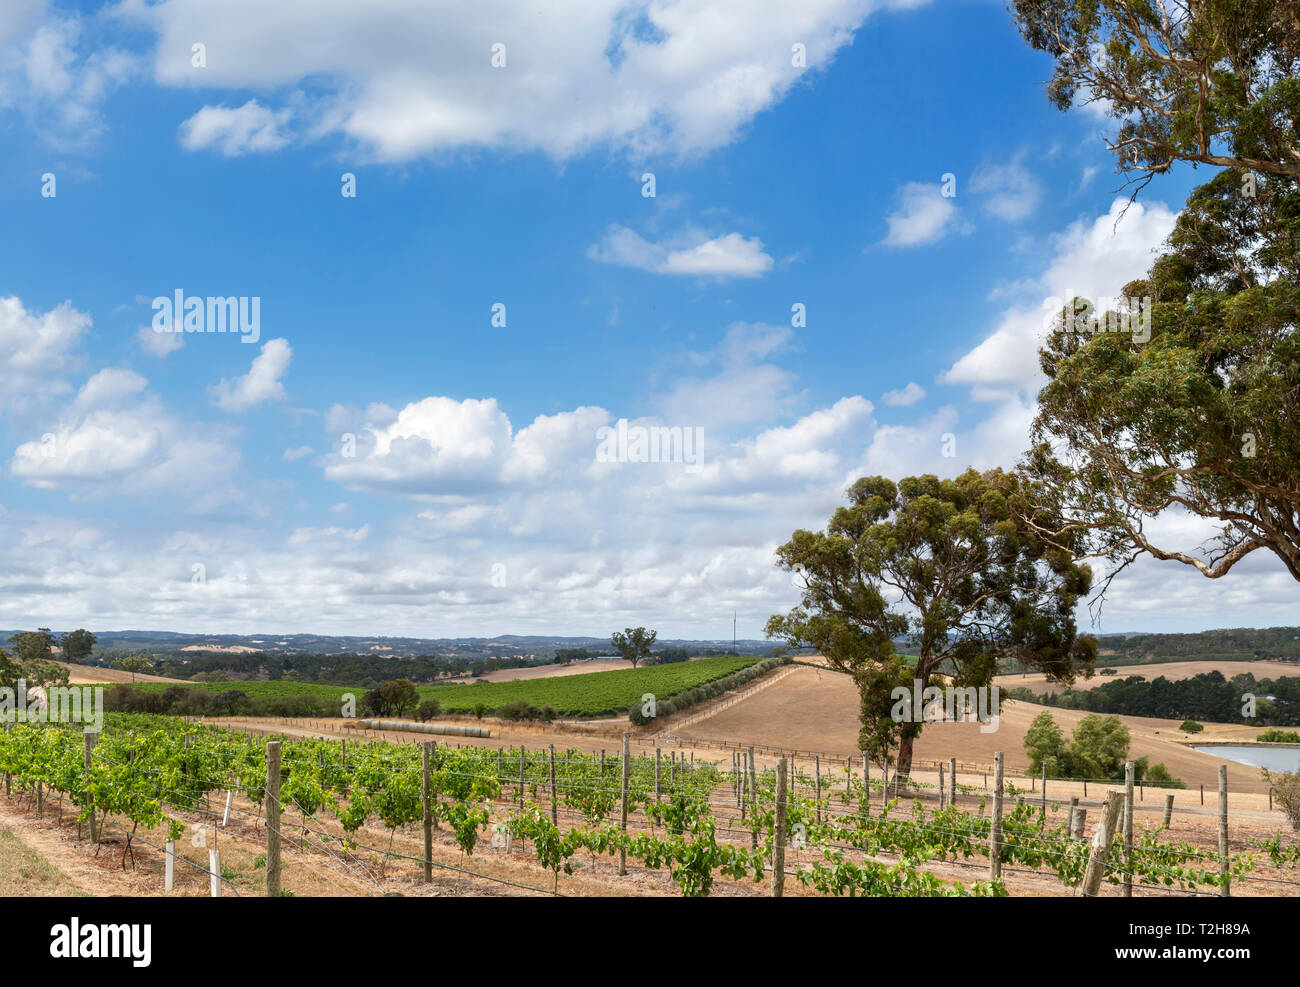 Rows of grape vines at The Lane Vineyard, Hahndorf, Adelaide Hills, South Australia, Australia - Stock Image